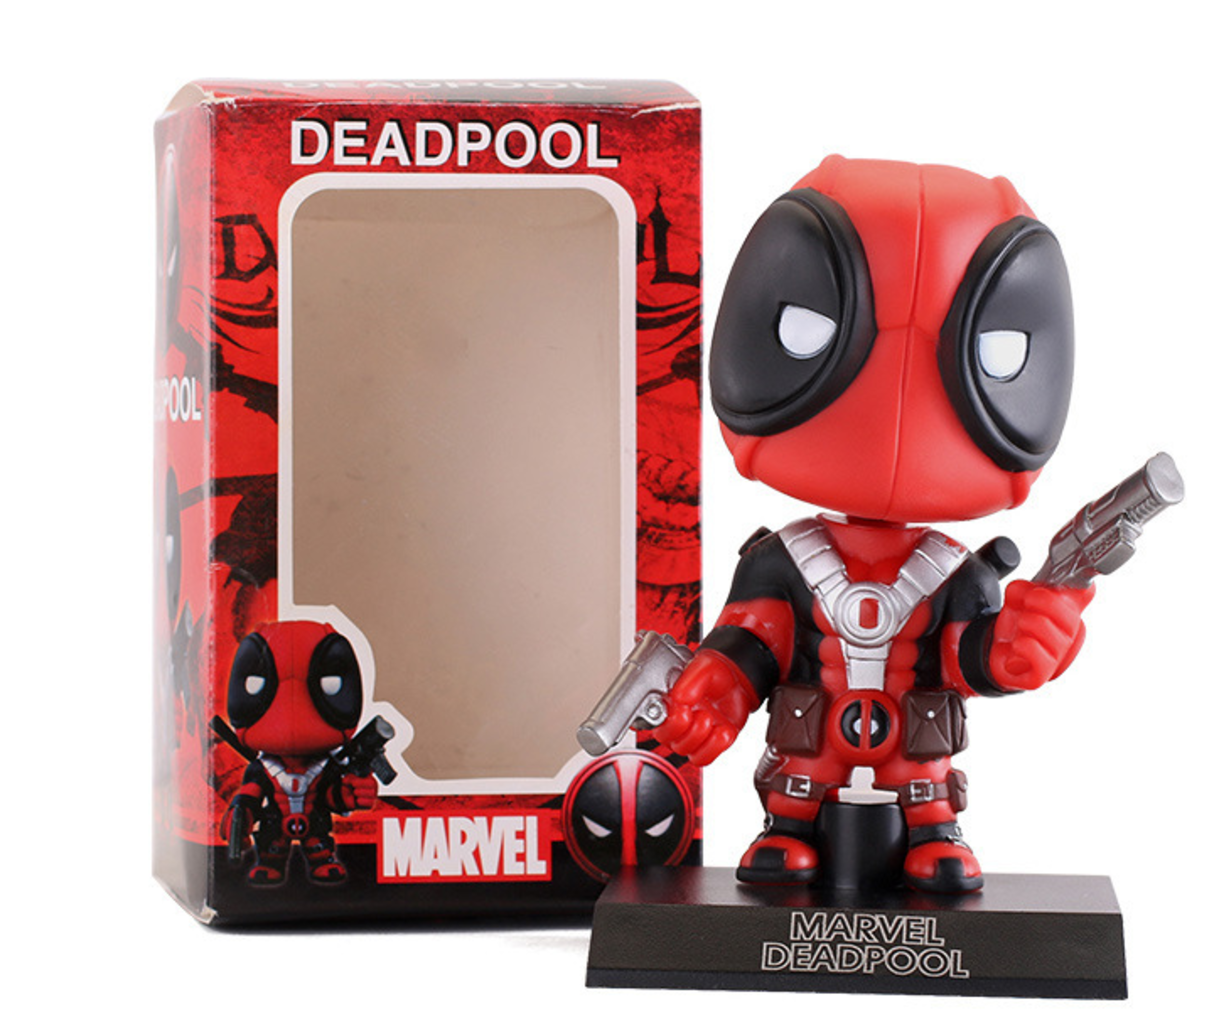 Exclusive Pop Marvel Comics Deadpool Bobble Head Action Figure Collectible Toy 10cm neca epic marvel deadpool ultimate collectible 1 4 scale action figure model toy 16 45cm ems free shipping